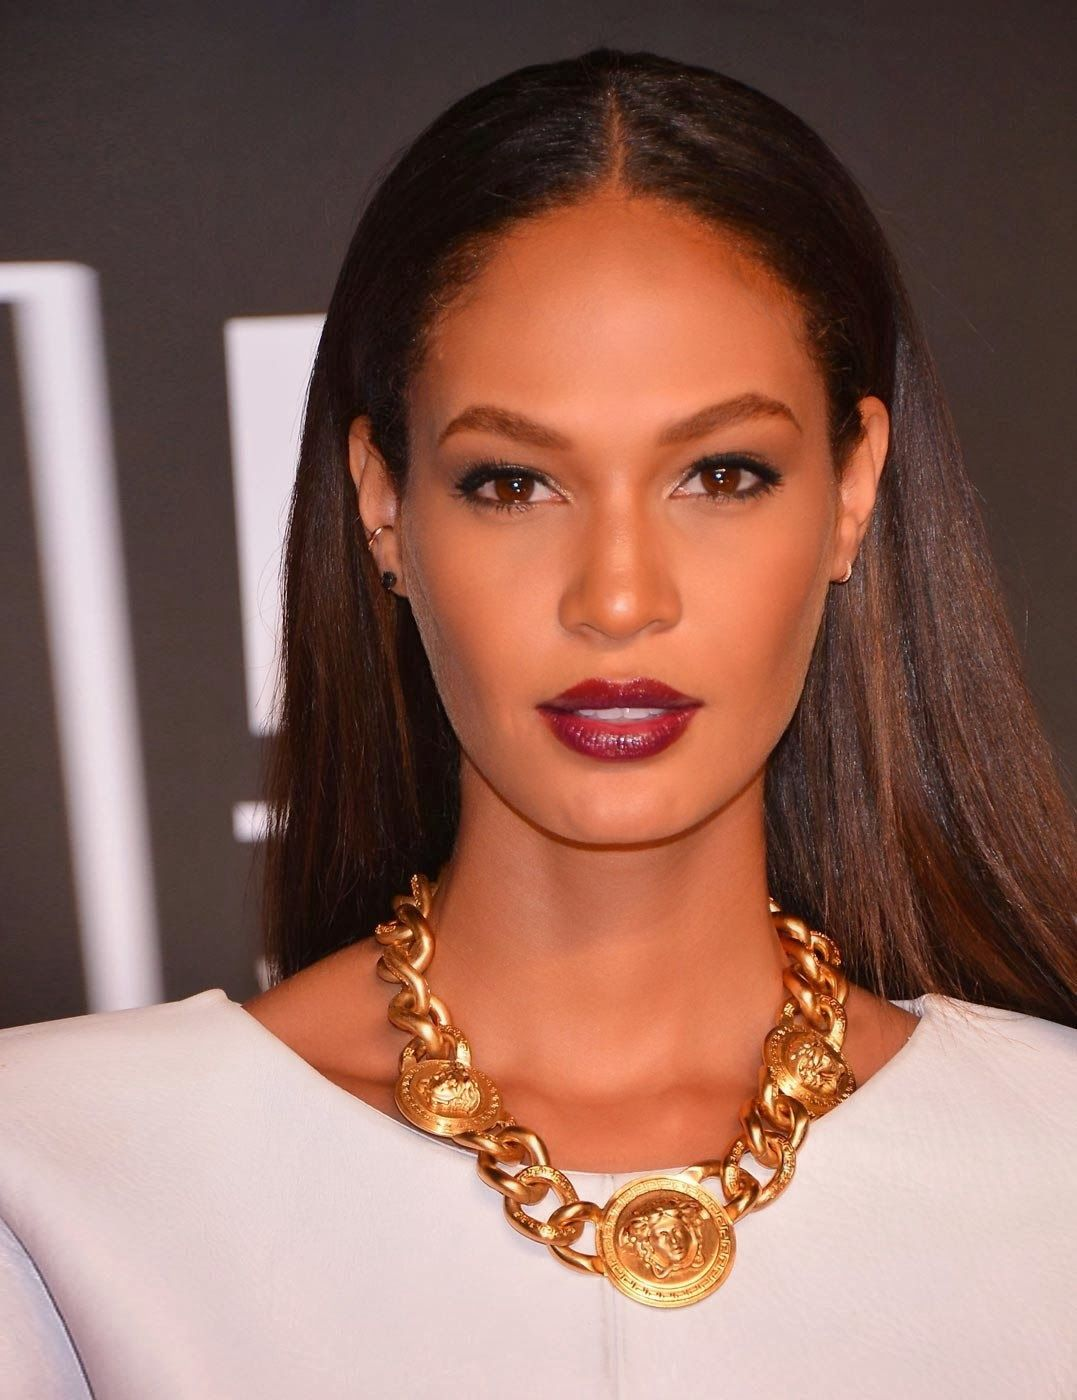 Puerto Rican fashion model Joan Smalls arrives on the red